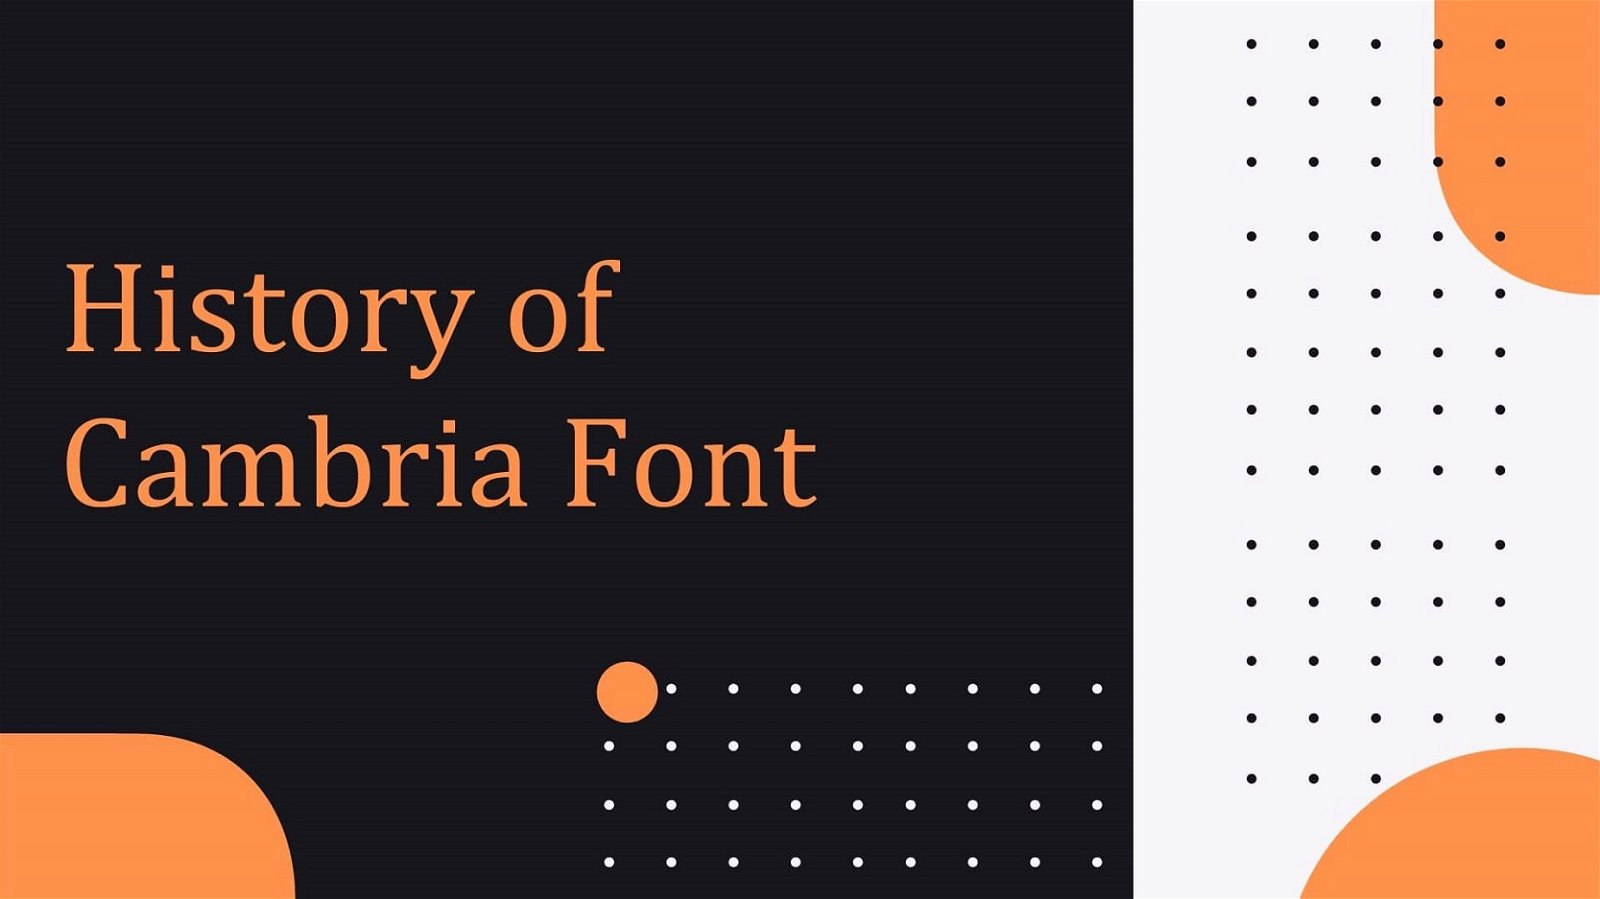 History of Cambria Font